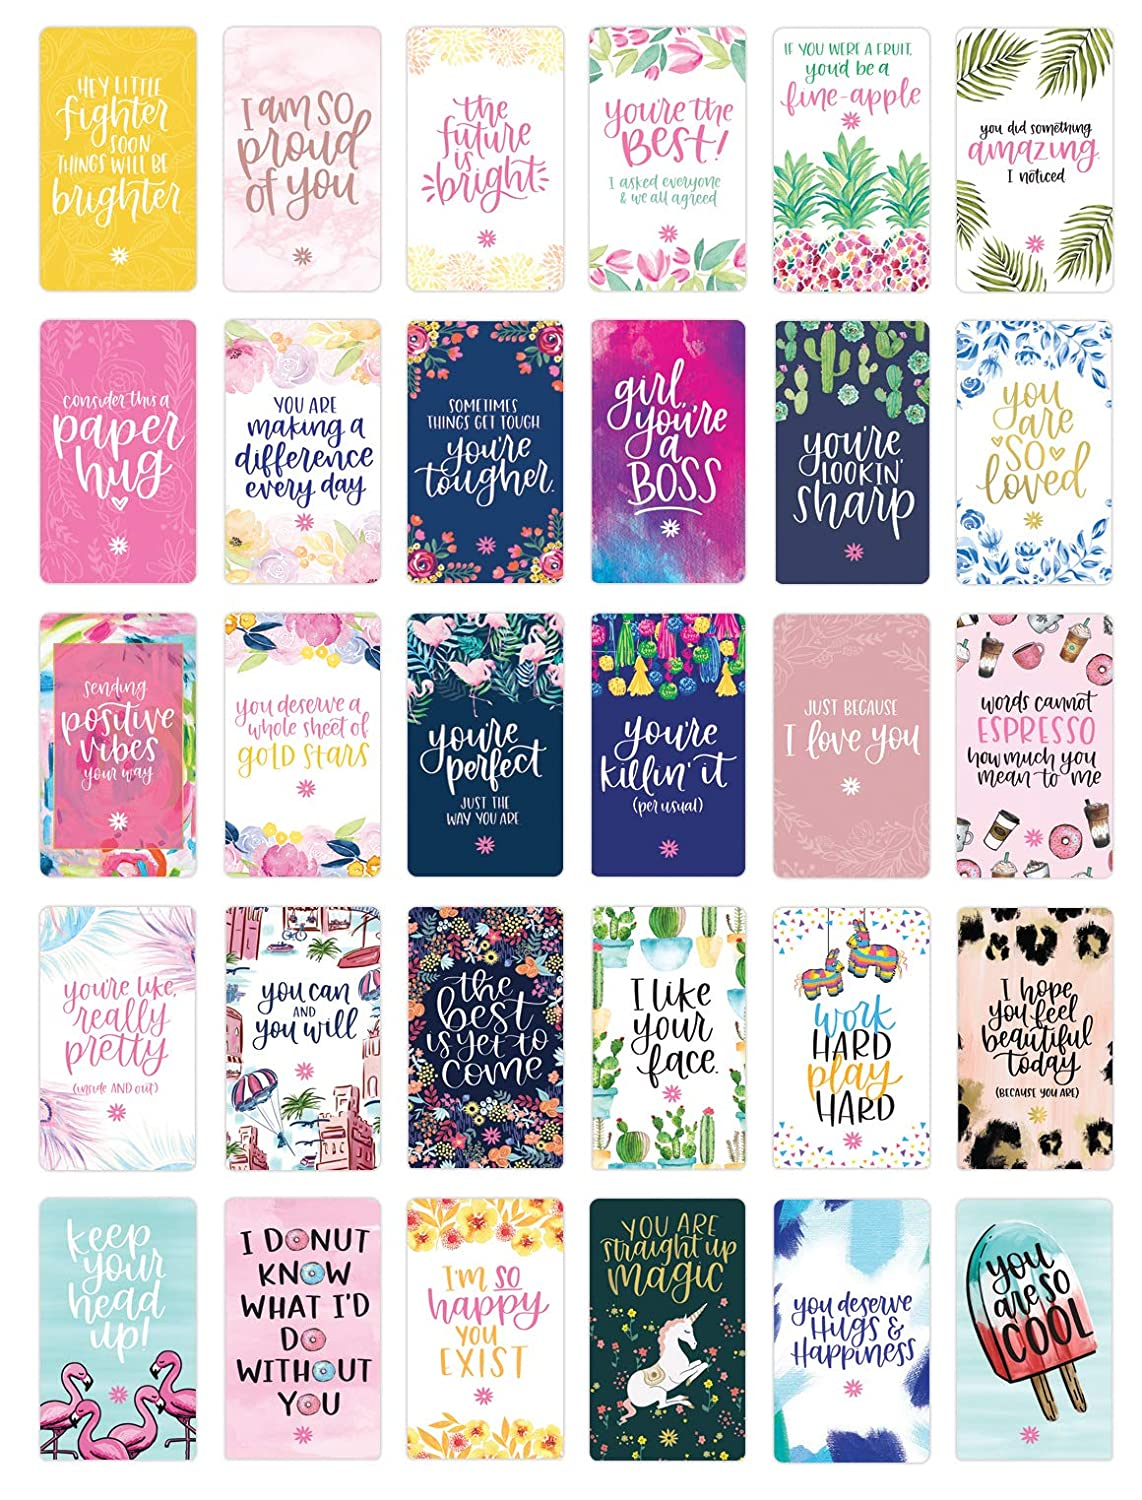 bloom daily planners Encouragement Card Deck - Cute Inspirational Quote  Cards - Just Because Cards - Set of Thirty 2\